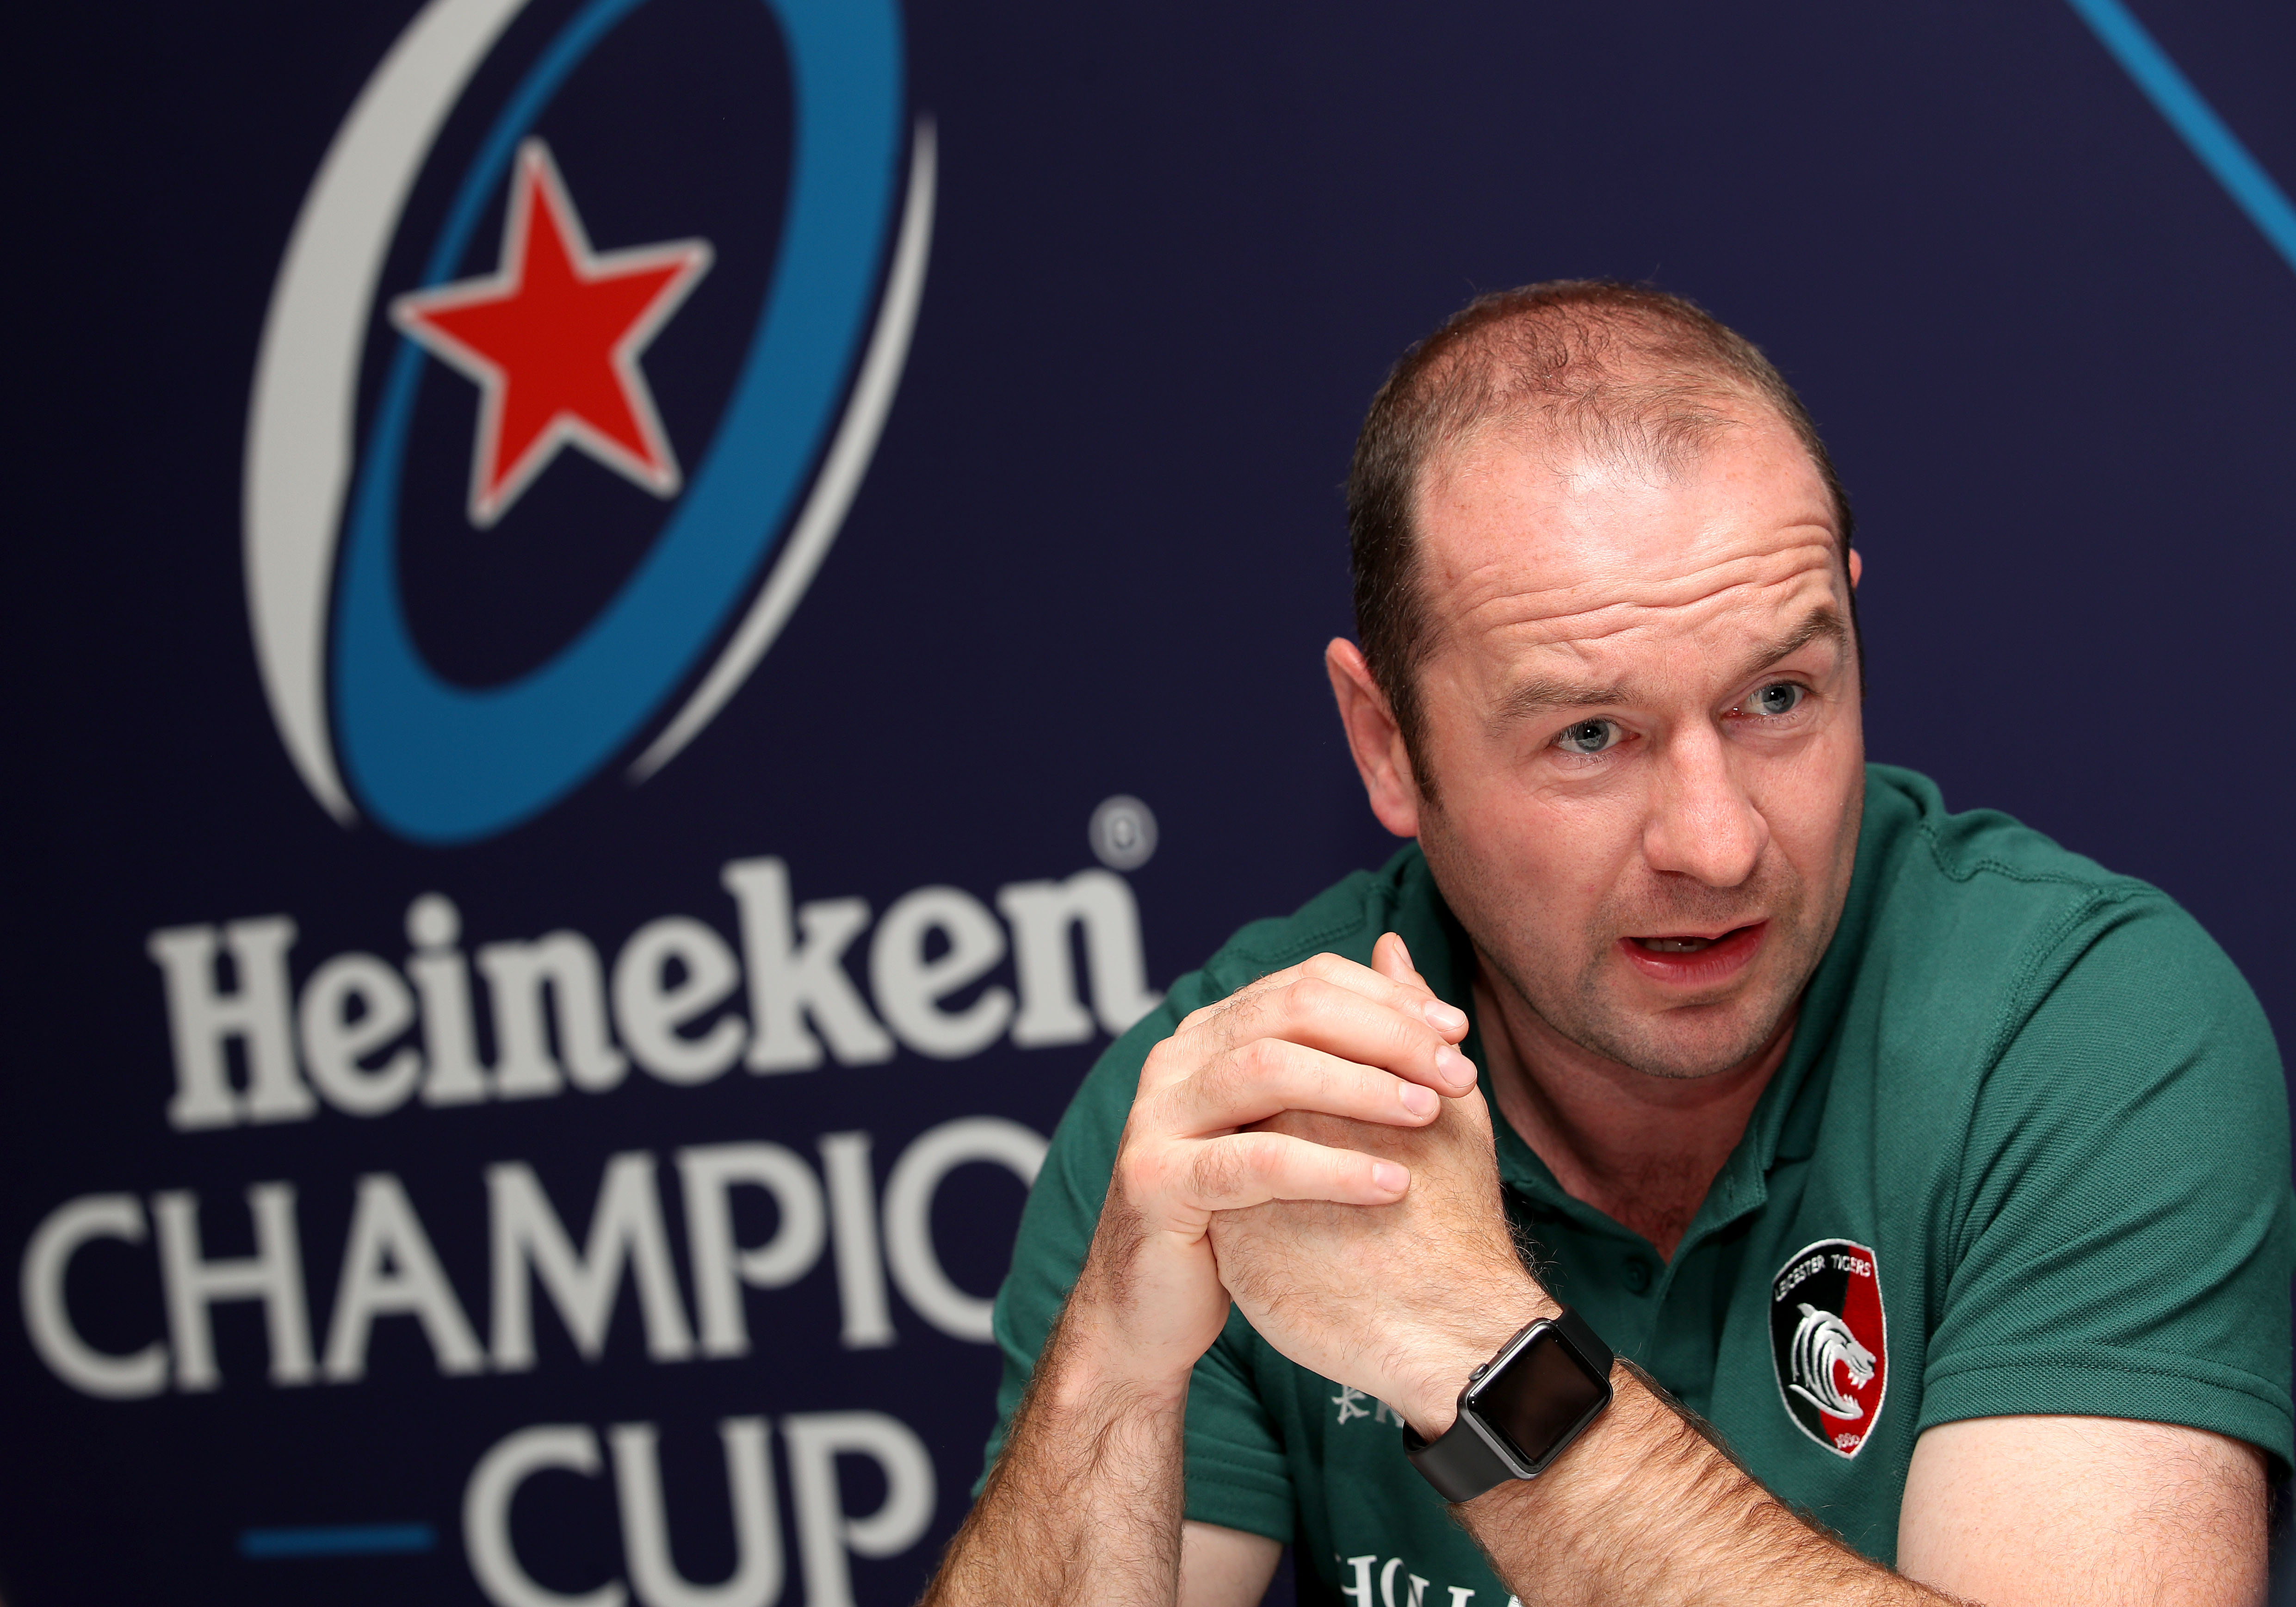 Murphy hoping for improved Heineken Champions Cup campaign